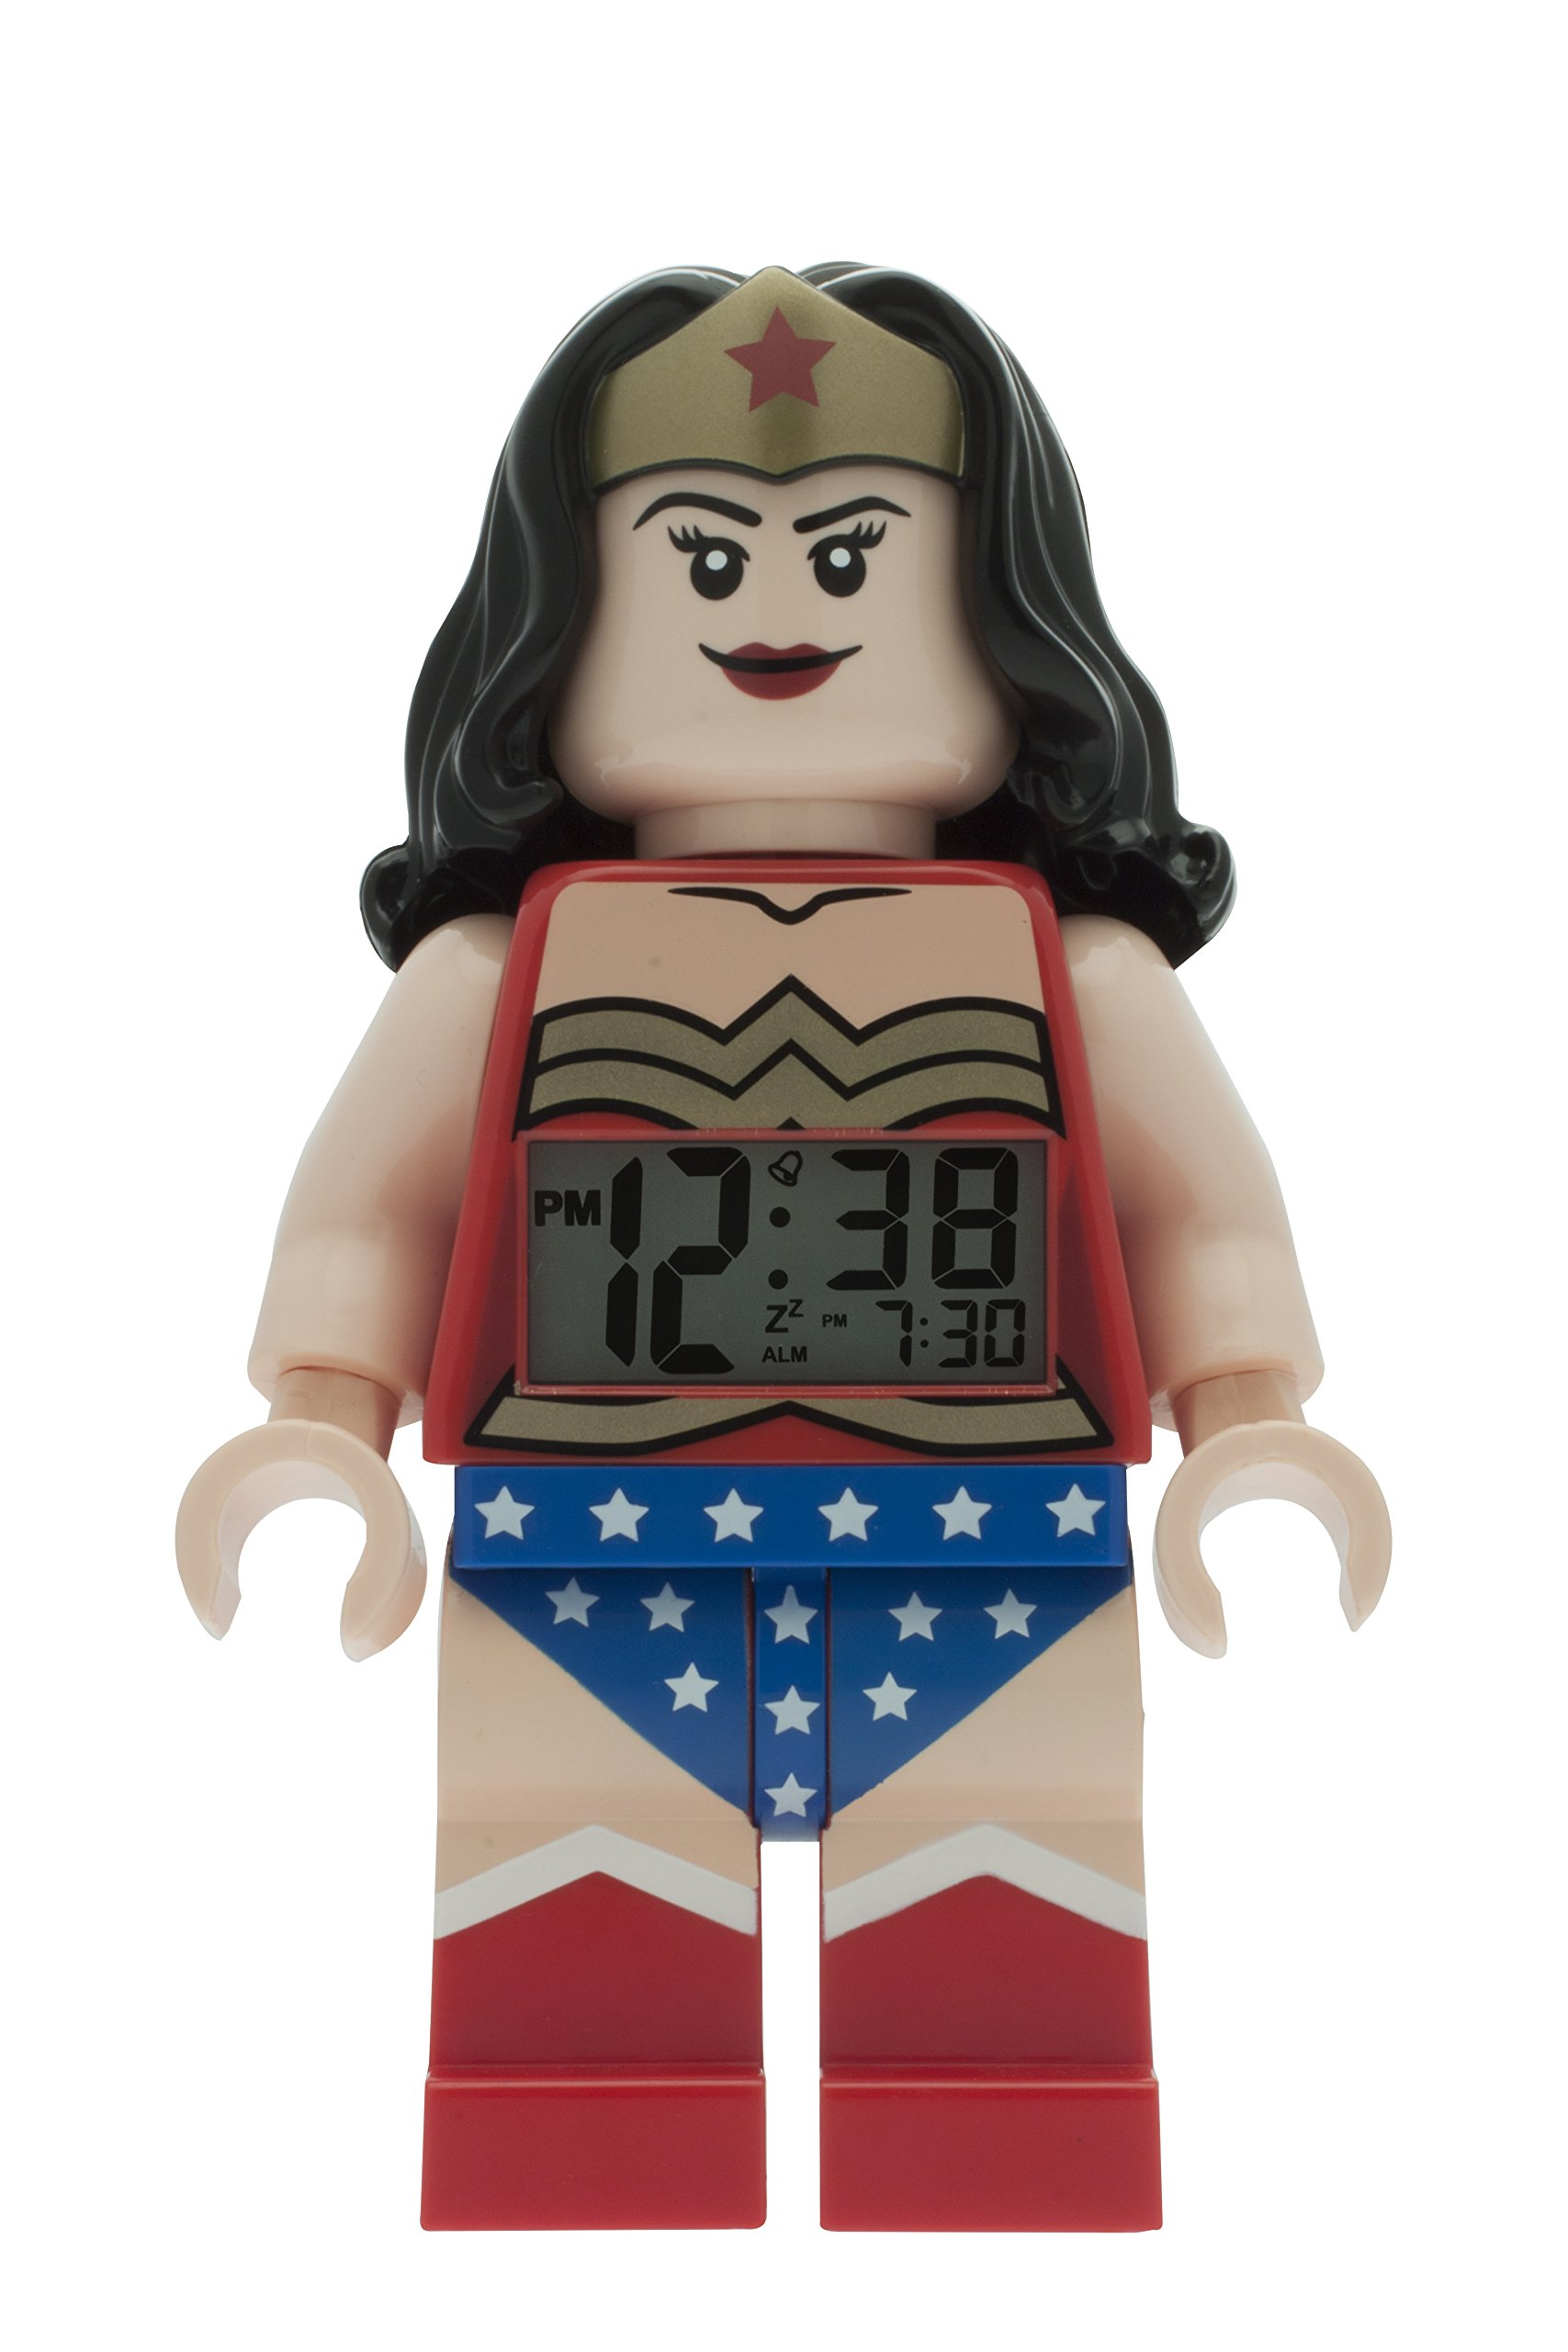 Lego DC Comics 9009877 Super Heroes Wonder Woman Kids Minifigure Light up Alarm Clock | red/Blue | Plastic | 9.5 inches Tall | LCD Display | boy Girl | Official by LEGO